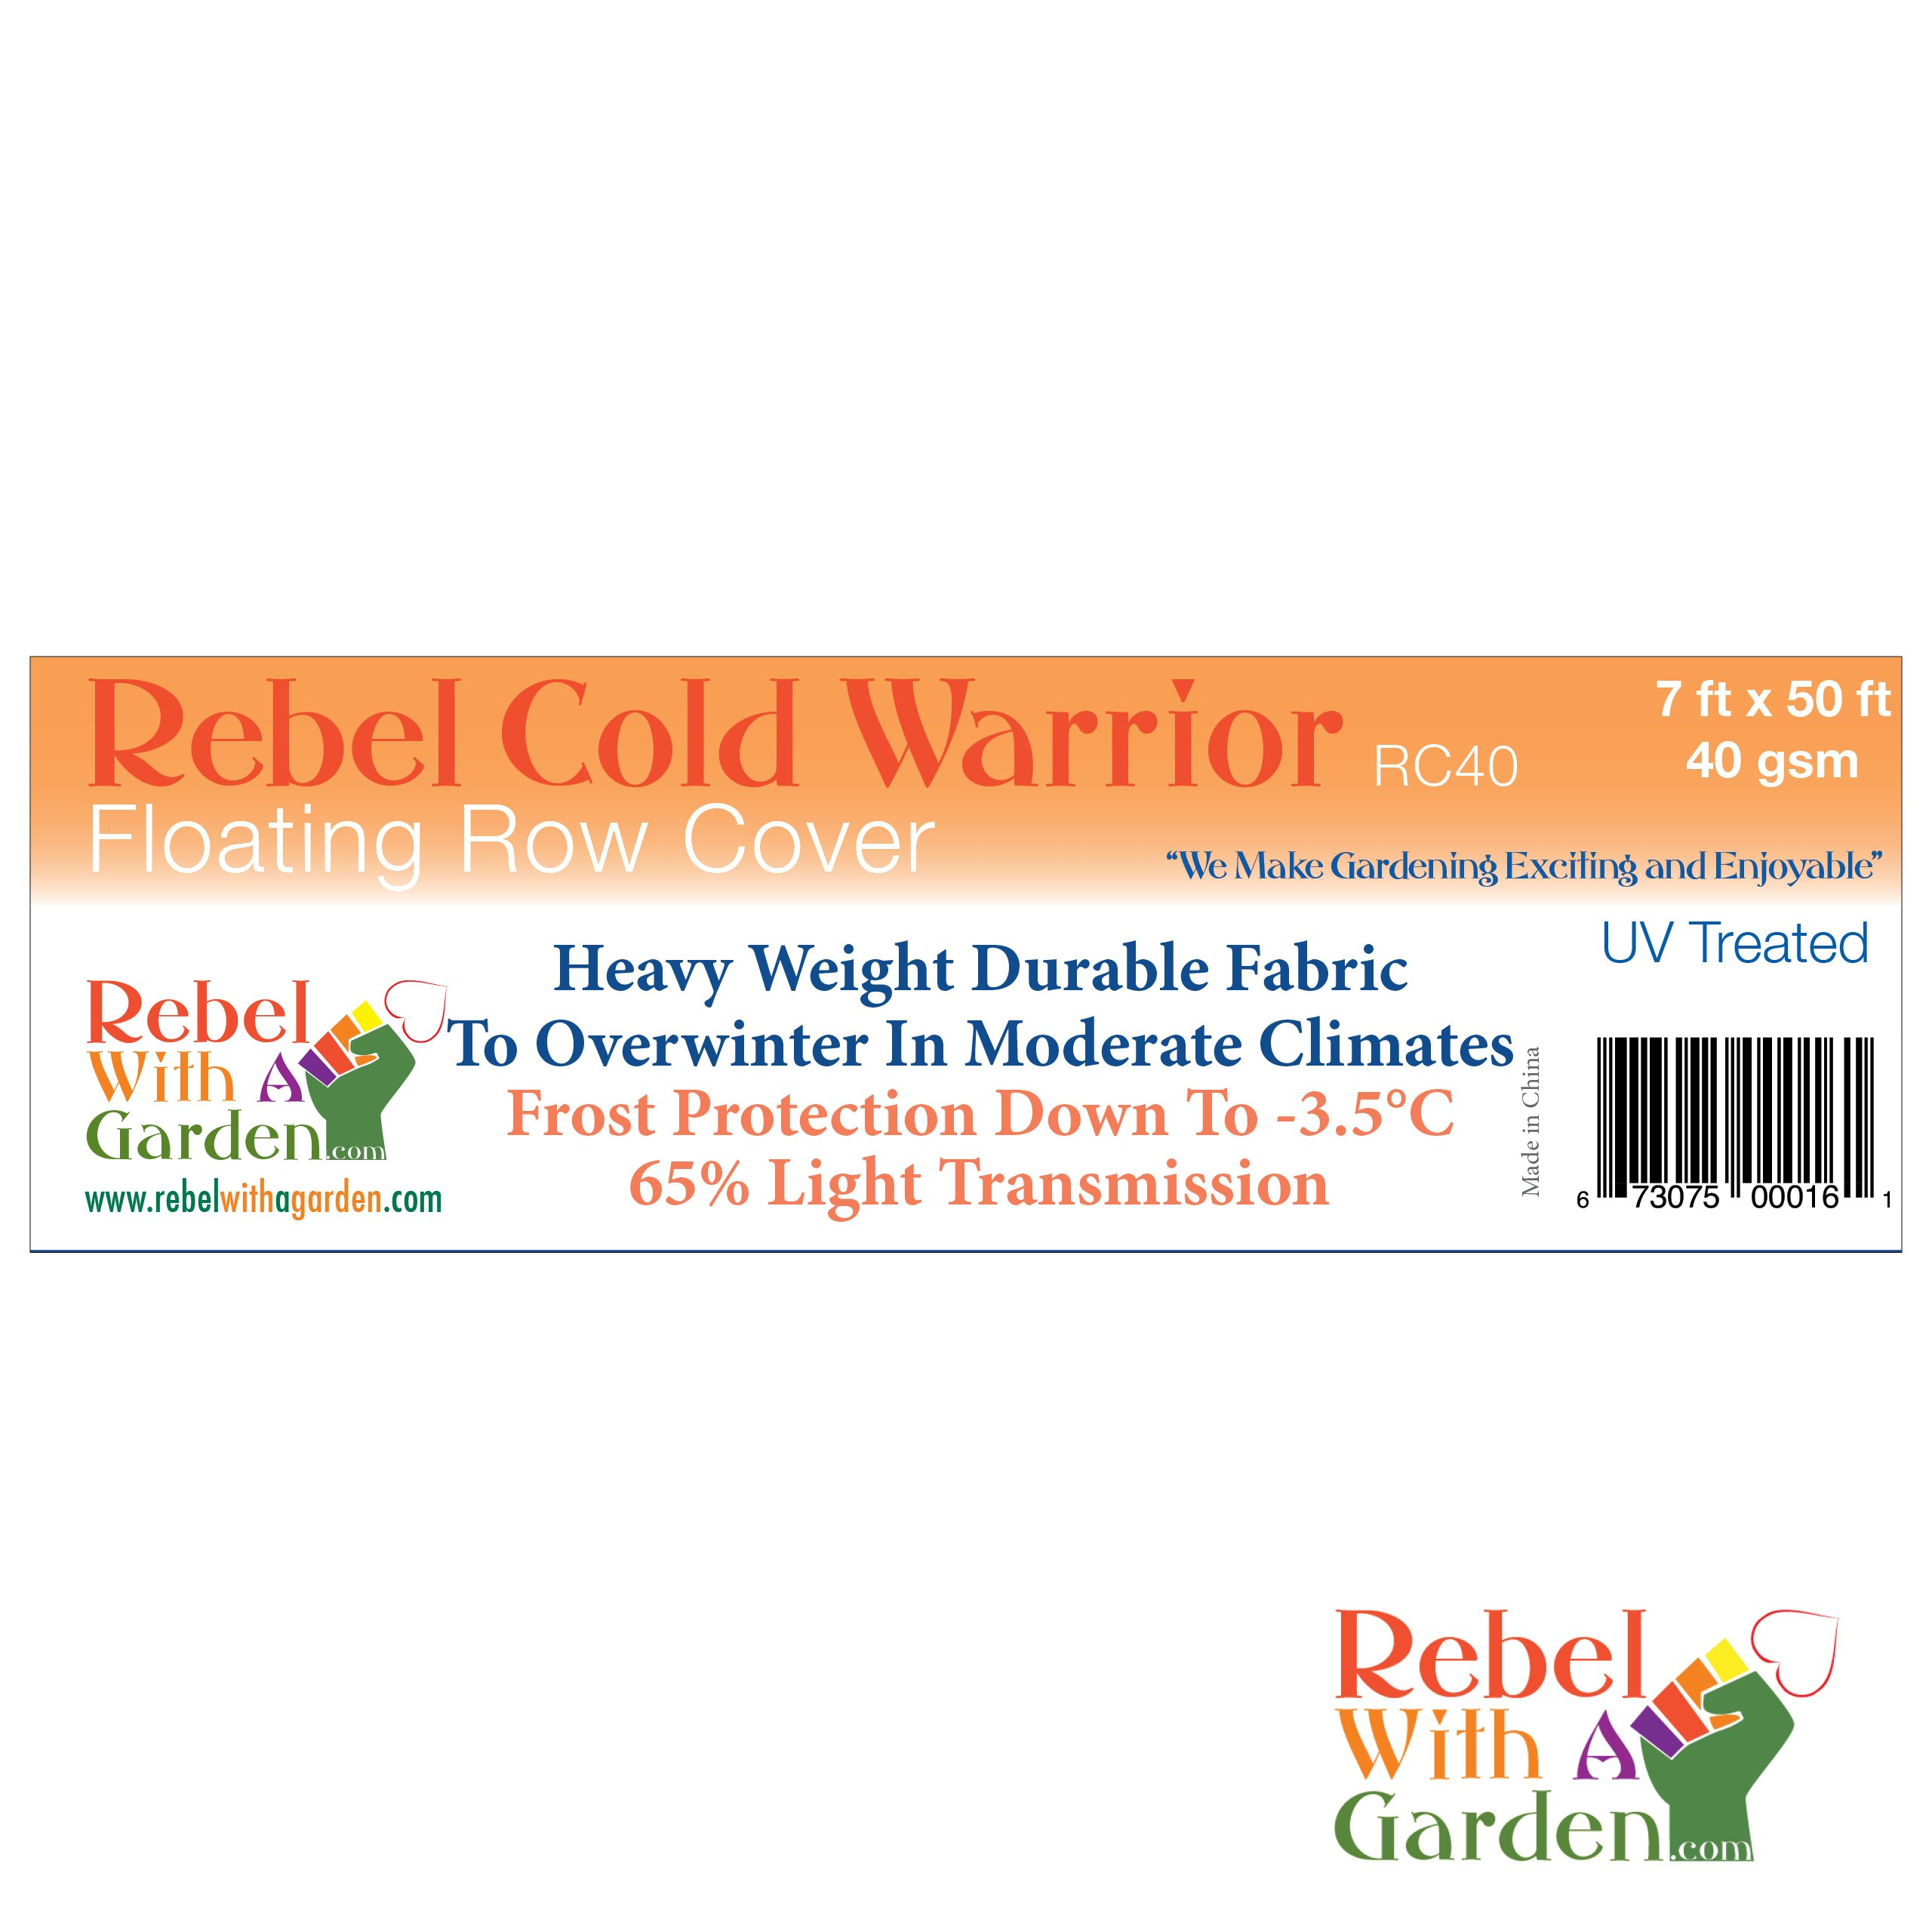 Rebel Cold Warrior 1.18 oz (40gsm) Floating Row Cover Garden Fabric (UV Treated) 7 ft by 50 ft by Rebel with A Garden by Rebel Cold Warrior (Image #4)